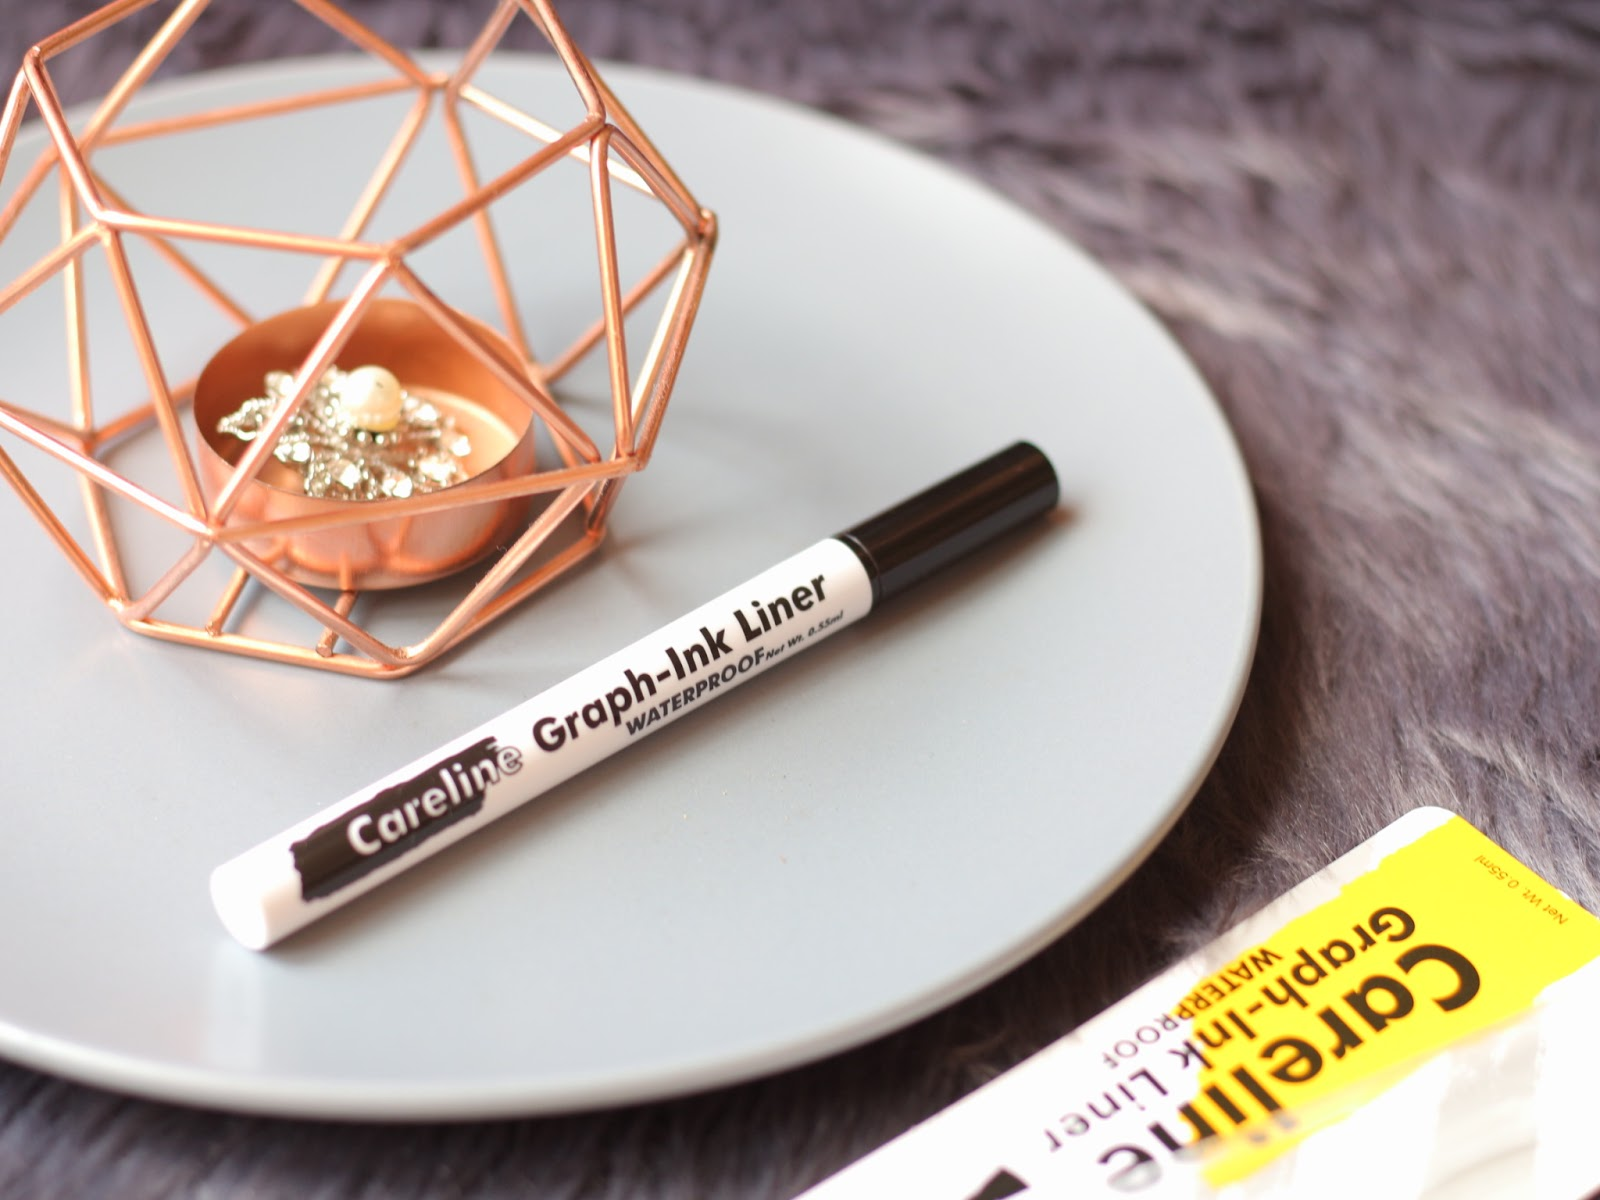 Careline Graph Ink Eyeliner Liner Review Stila Cosmetics Dupe